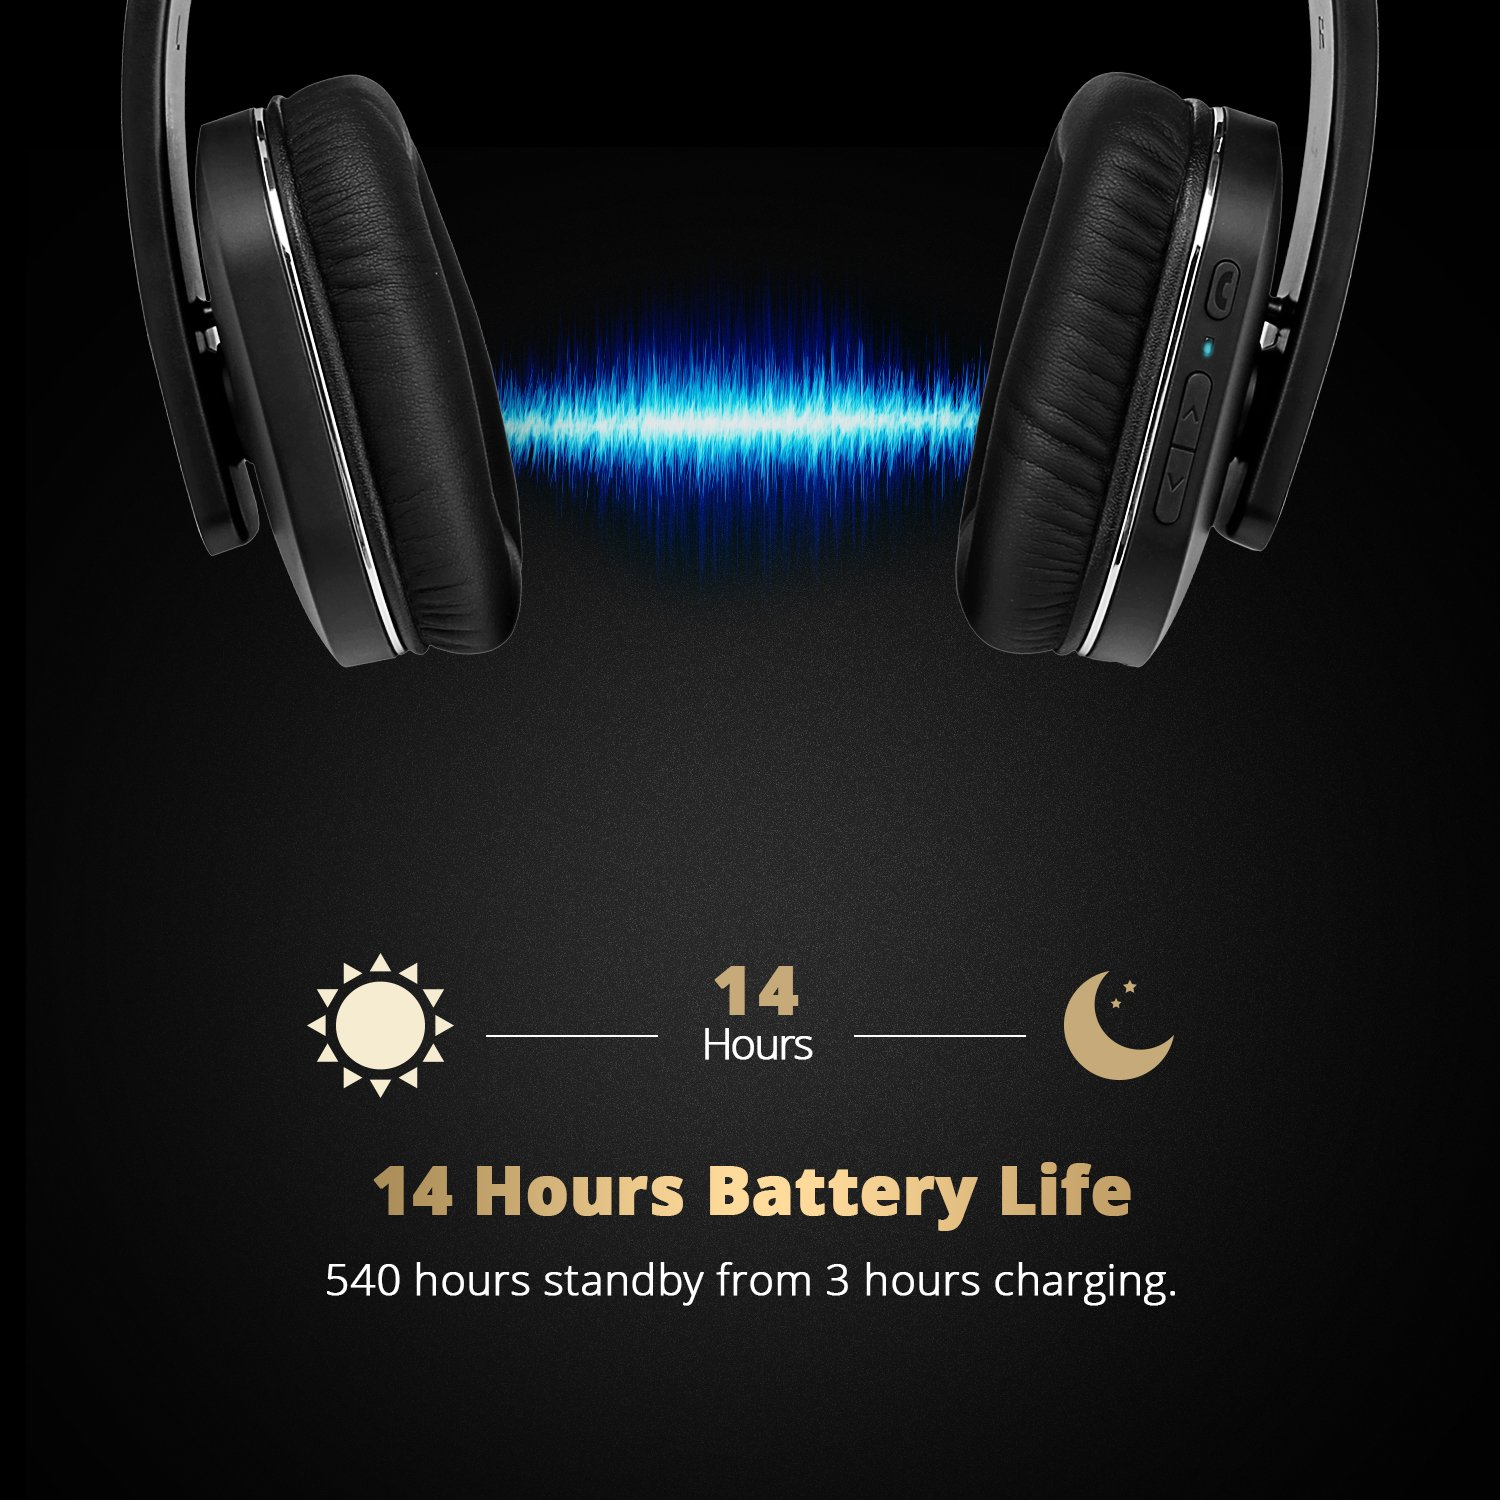 Android Devices Black TV Wireless Foldable Over ear Headphones with Built-in Mic Apt-X Hi-Fi Sound for Apple iDeaUSA Bluetooth Headphones